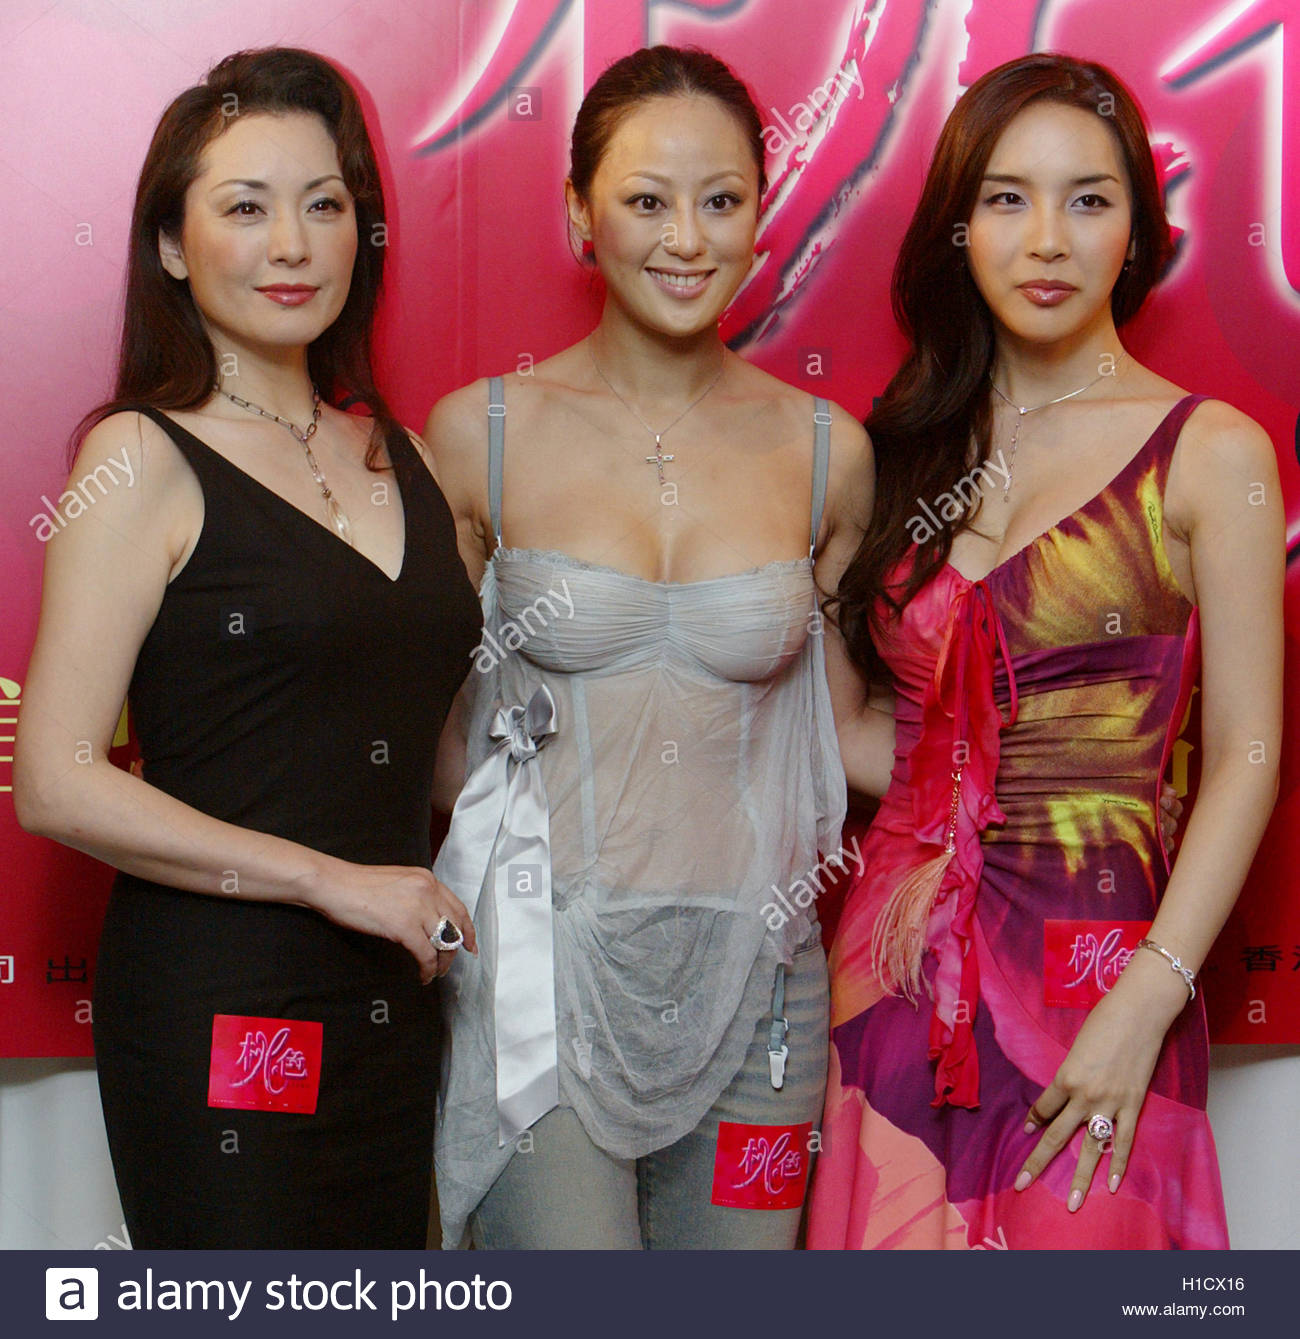 hong kong actress teresa cheung ese actress matsuzaka keiko reuters kin cheung ese actress matsuzaka keiko hong kong actress teresa cheung and south korean transexual singer